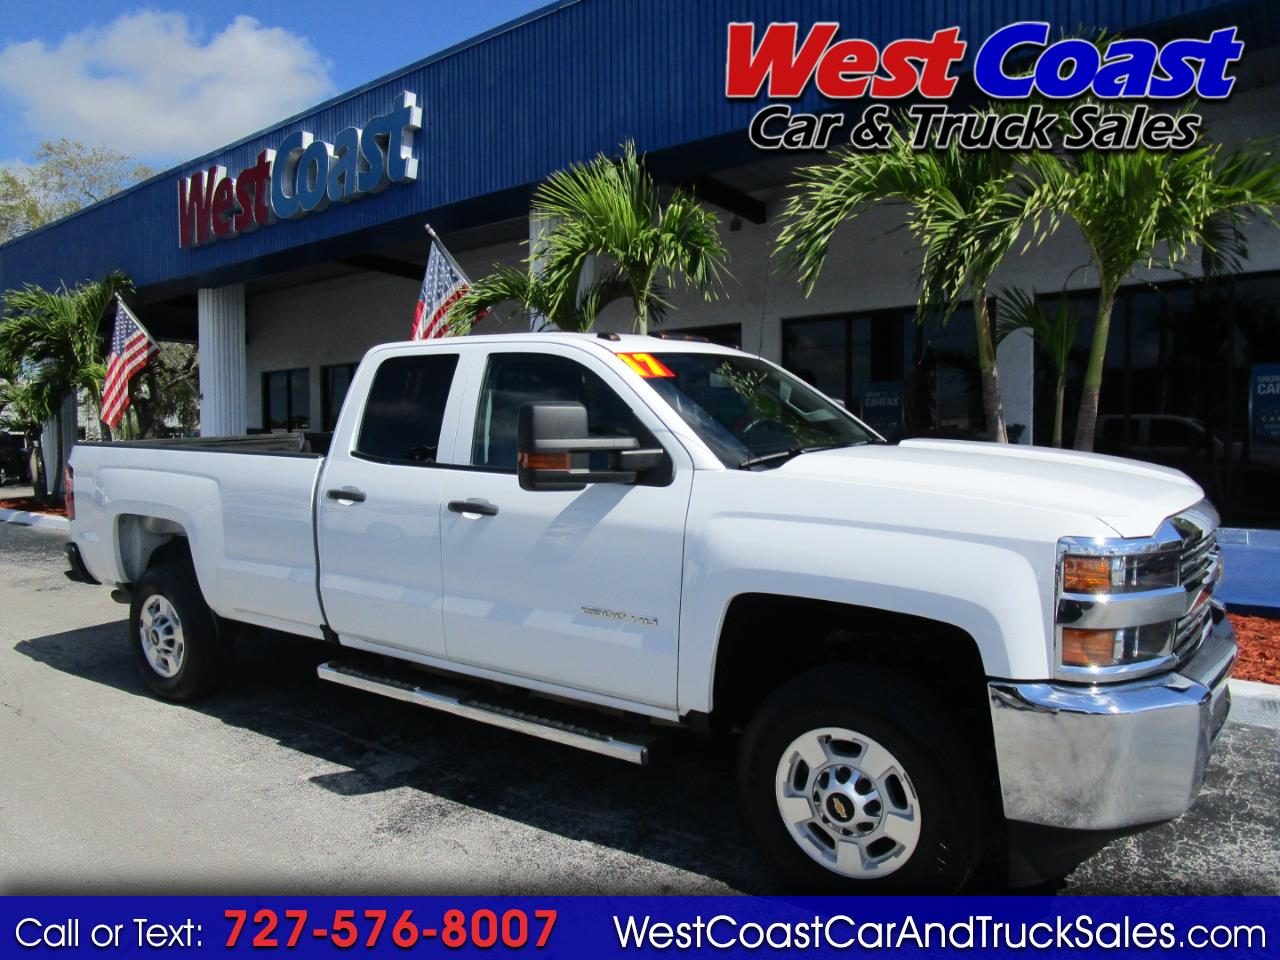 2017 Chevrolet Silverado 2500 Double Cab LS Long Bed